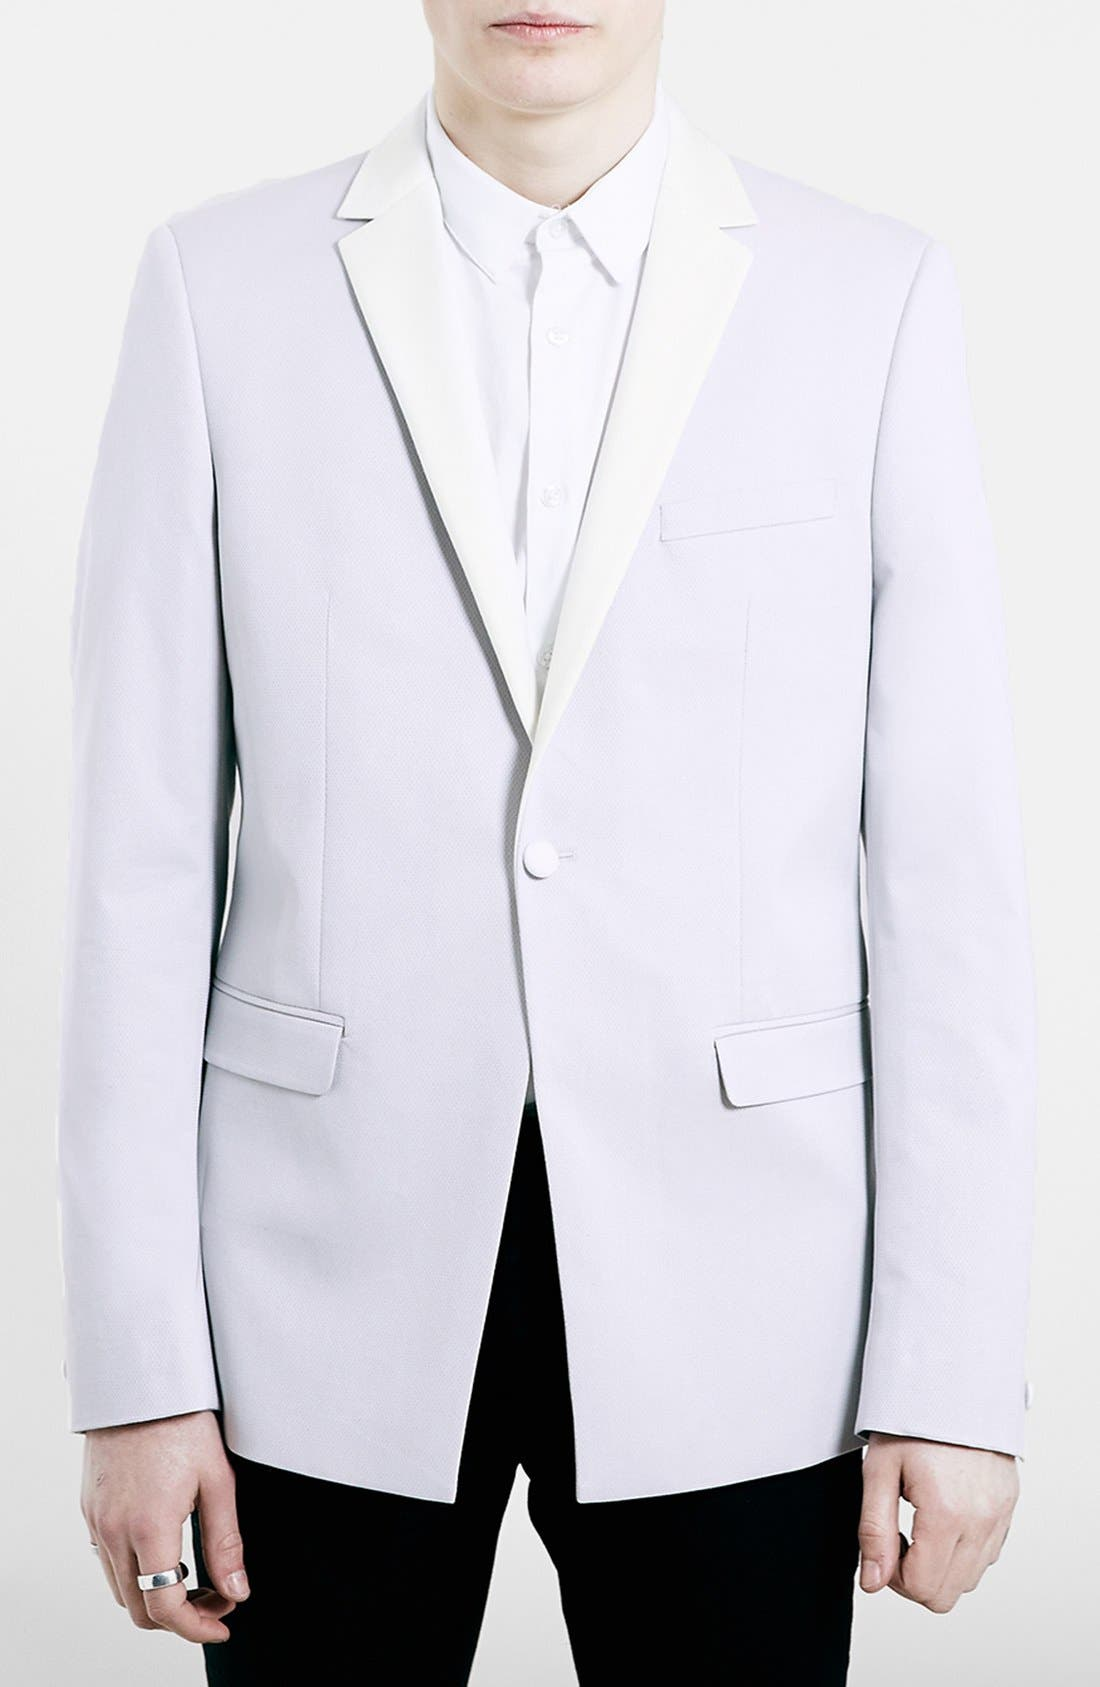 TOPMAN, Slim Fit Off White Tuxedo Jacket, Main thumbnail 1, color, 900